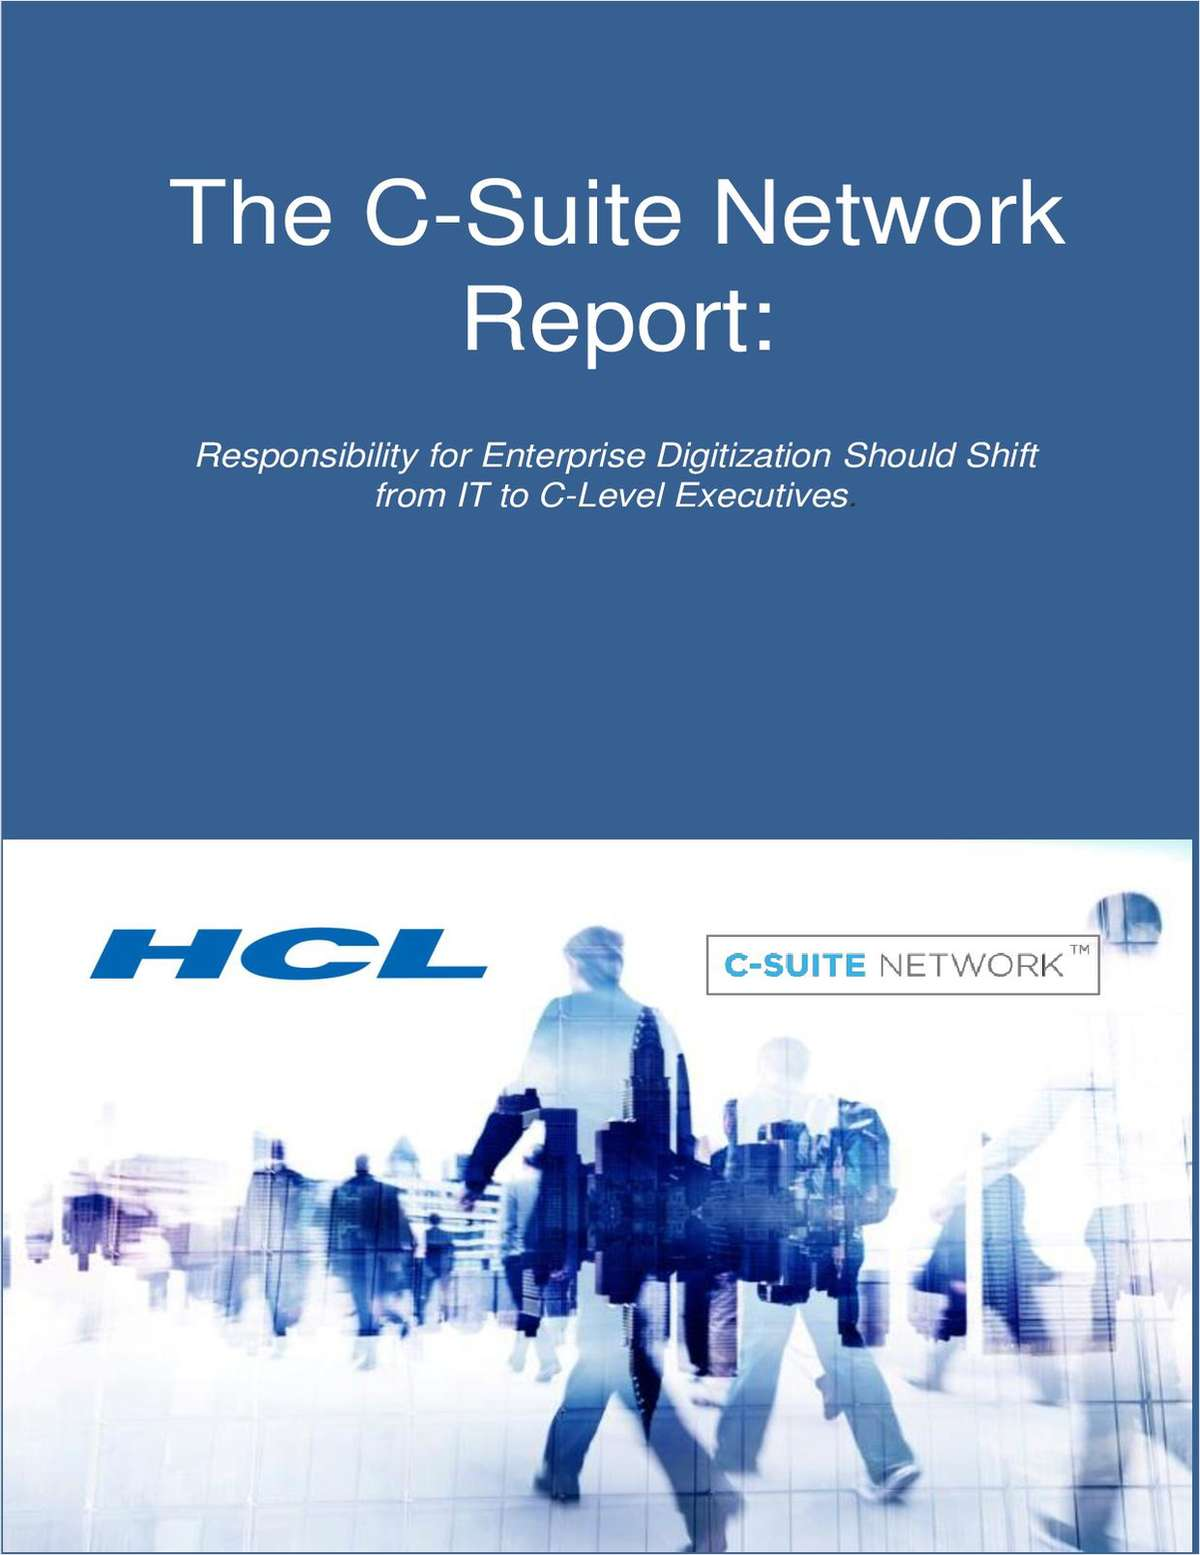 C-Suite Network Report: Responsibility for Enterprise Digitization Should Shift from IT to C-Level Executives